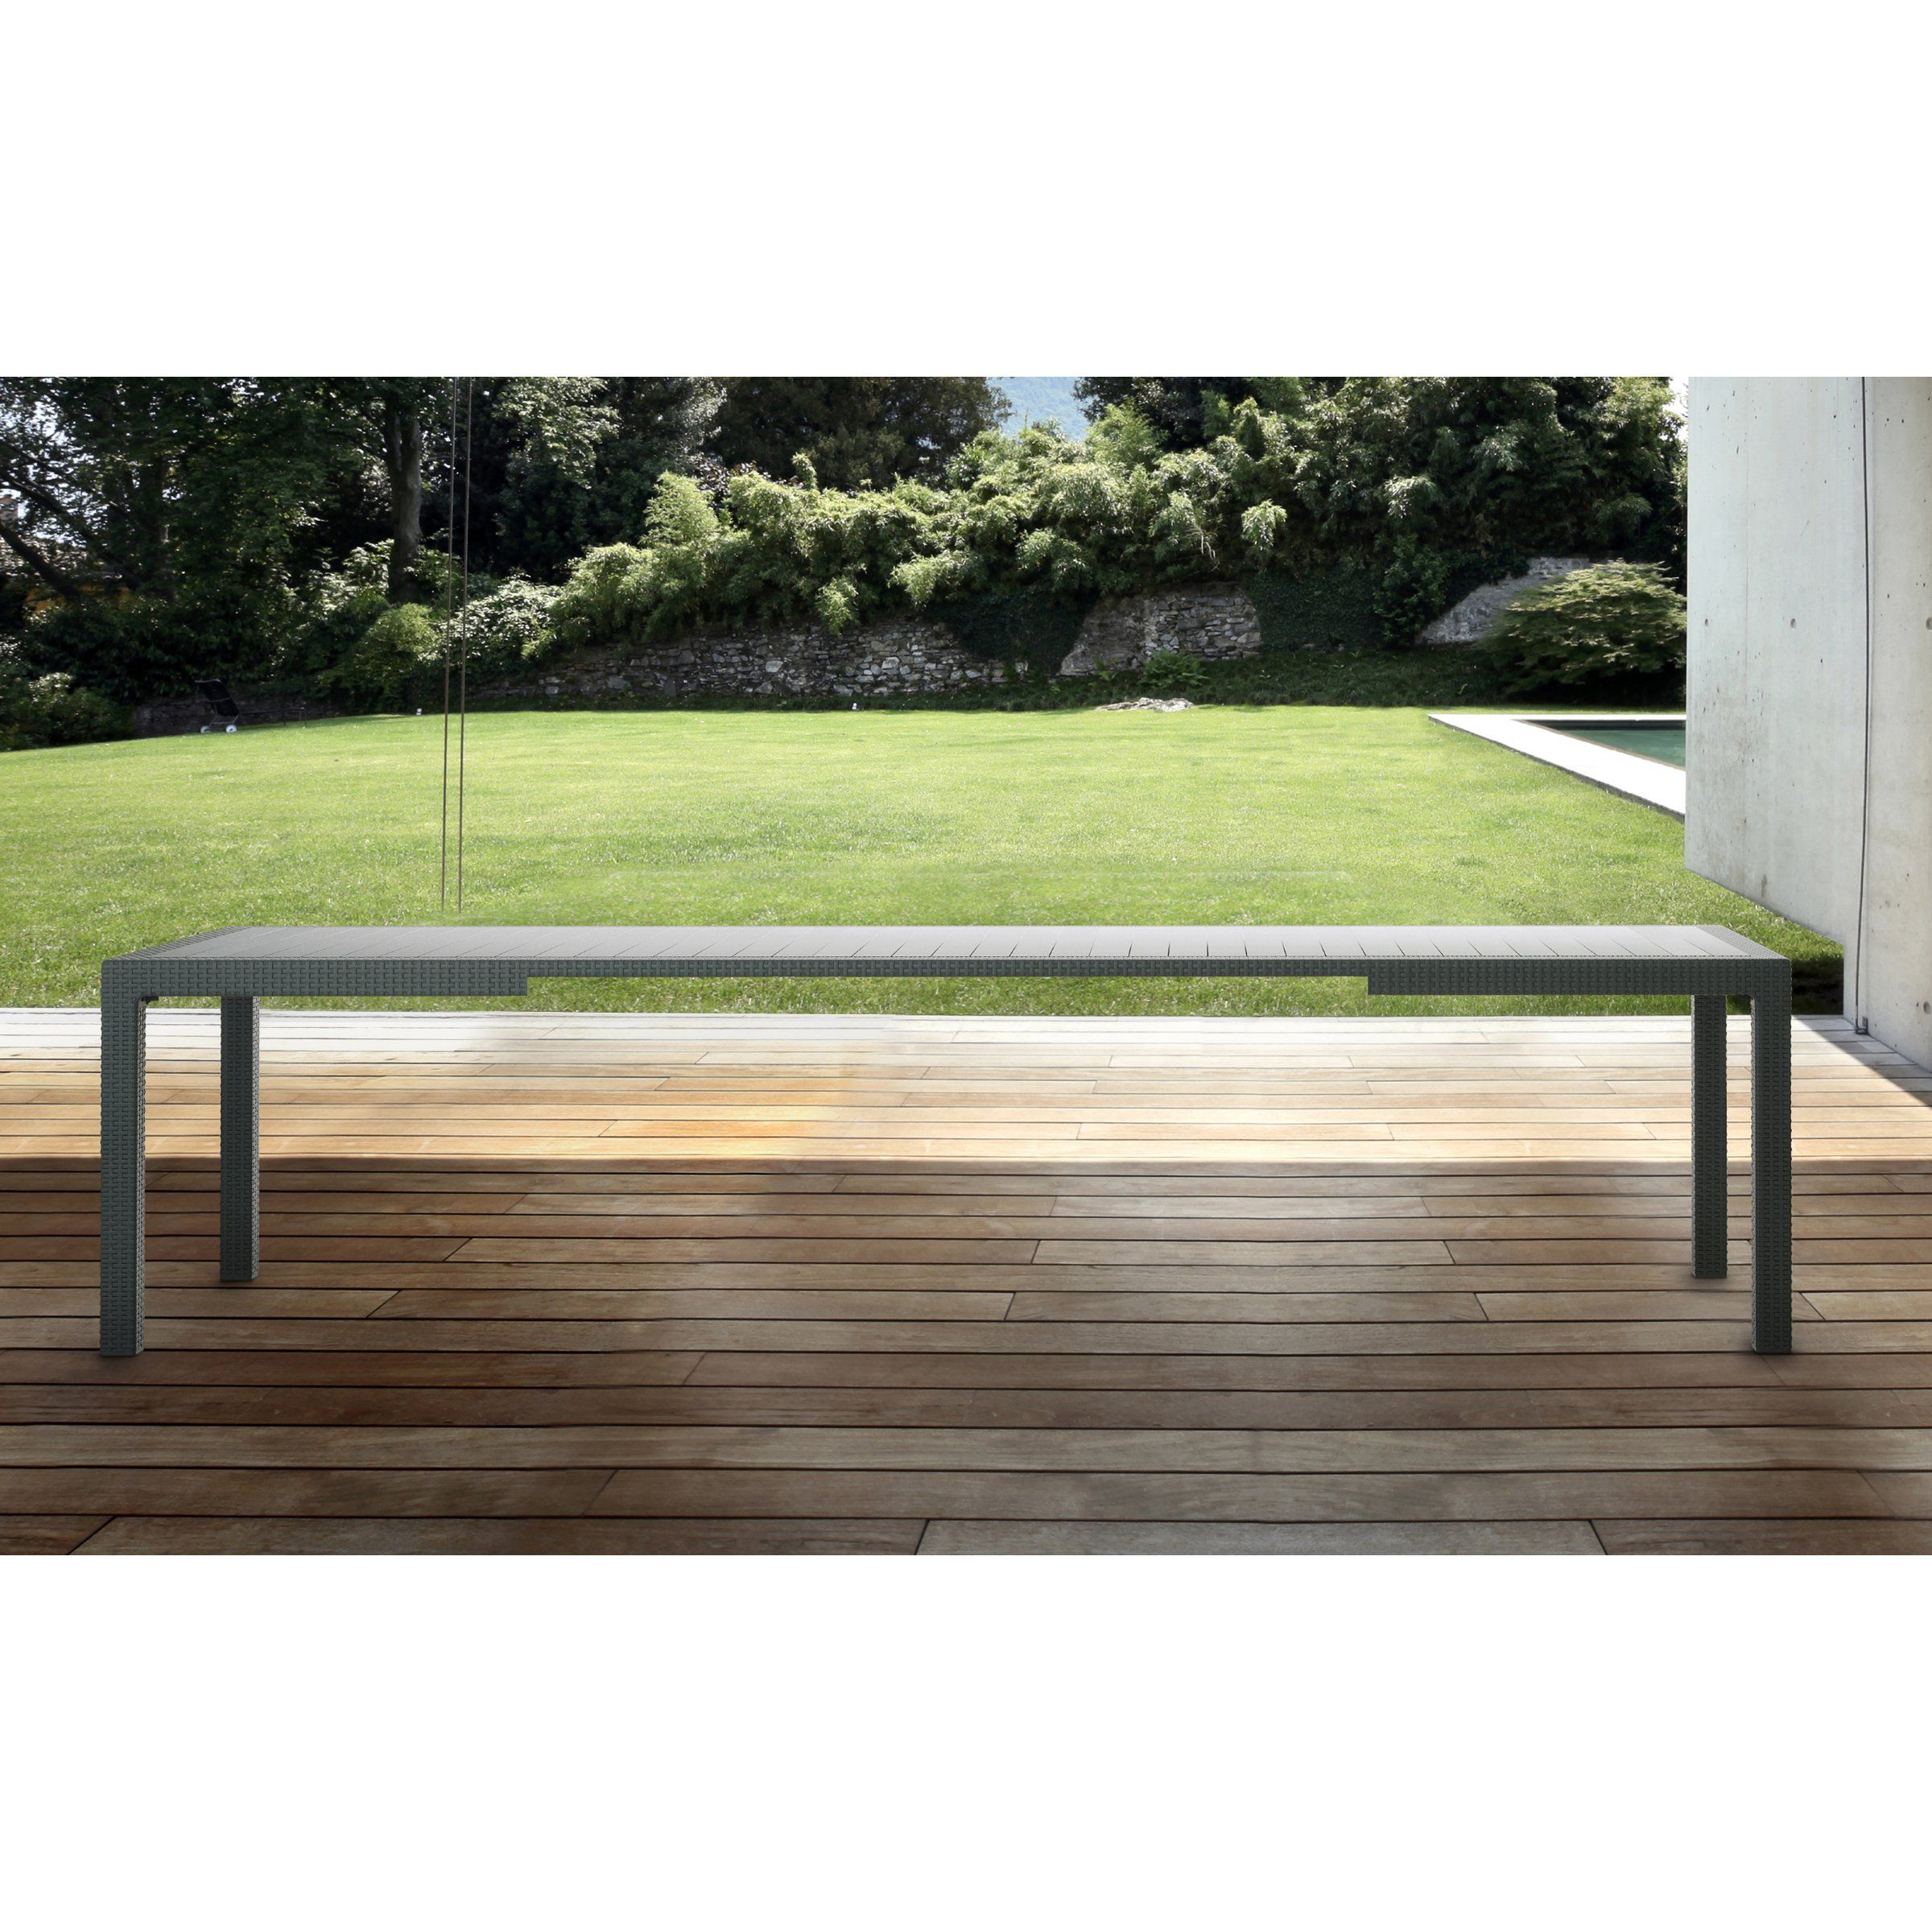 Keter Symphony Extendable Table Patio Dining Tables at Hayneedle